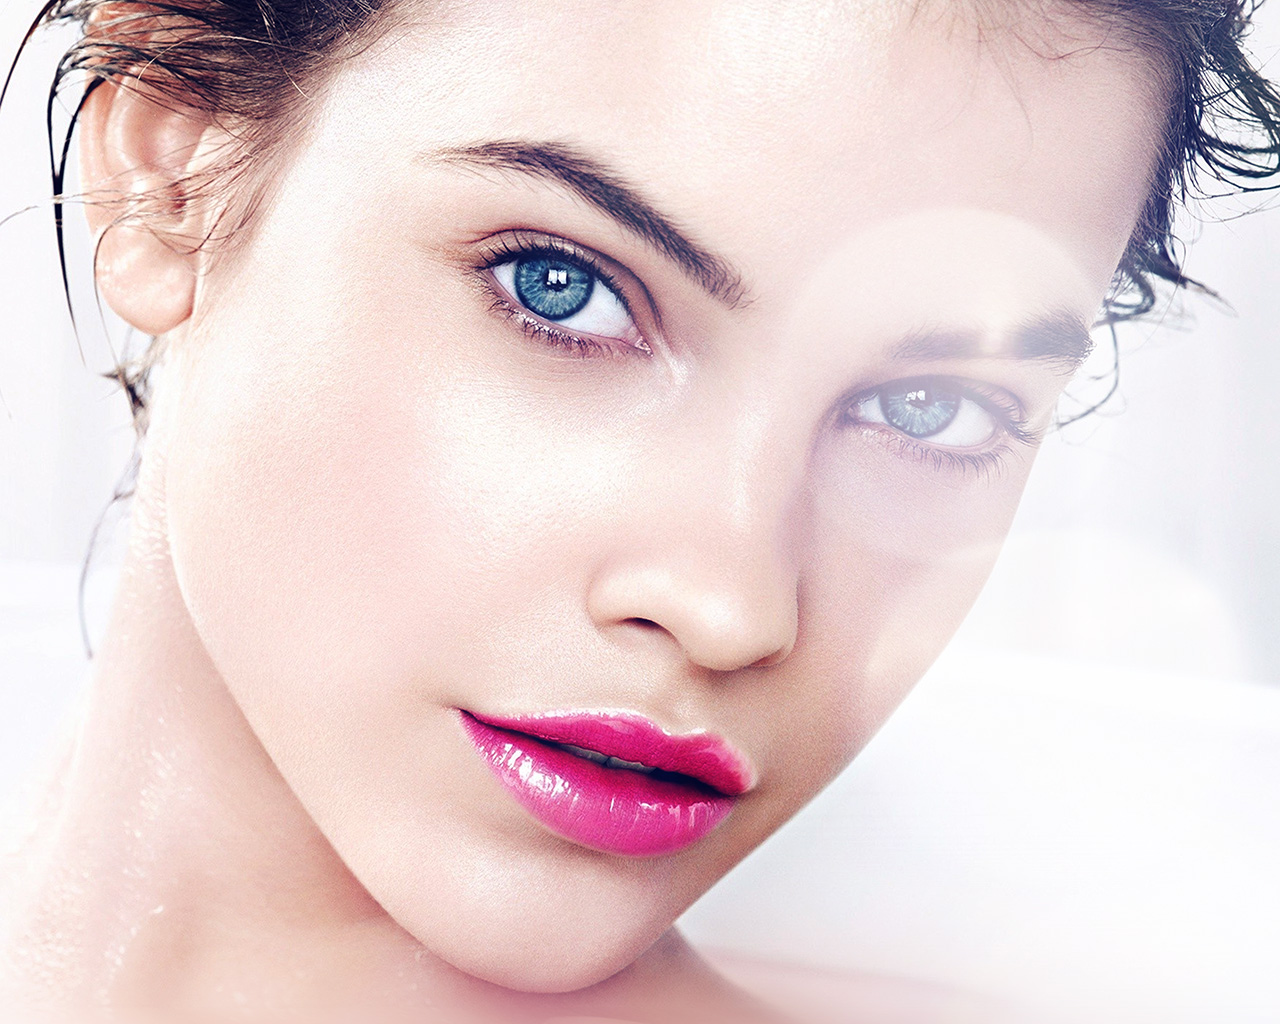 Pretty Fall Iphone Wallpapers Hh65 Barbara Palvin Face Cute Sexy Model Flare Wallpaper